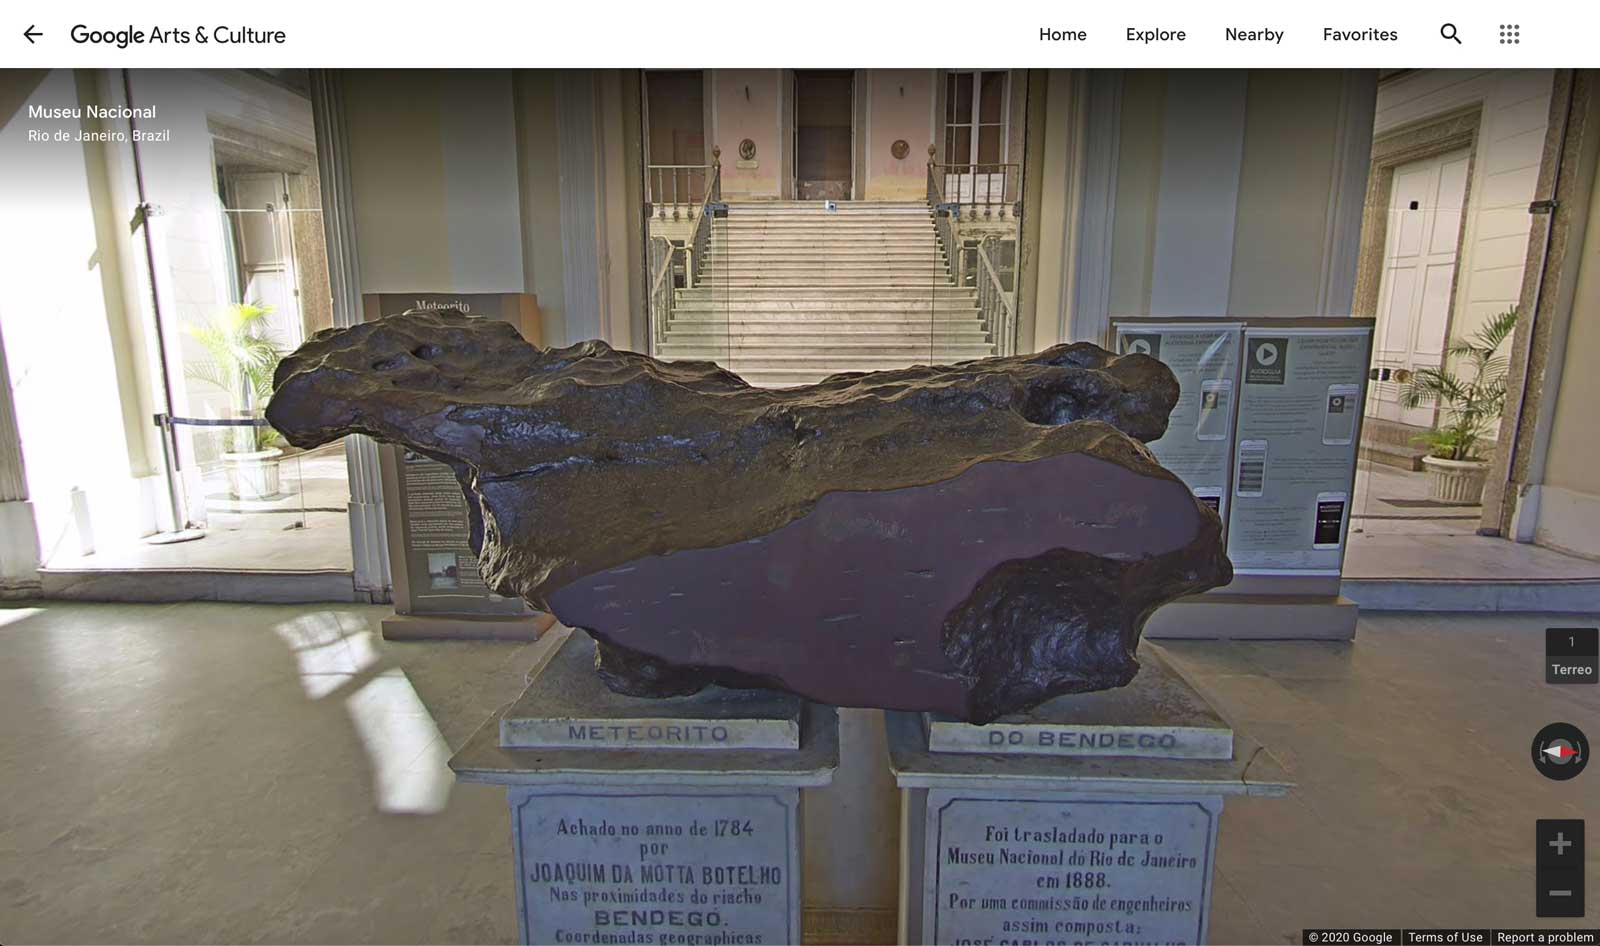 Fig. 4b. Bendegó as seen on Google Arts and Culture. Image credit: Google Arts and Culture.